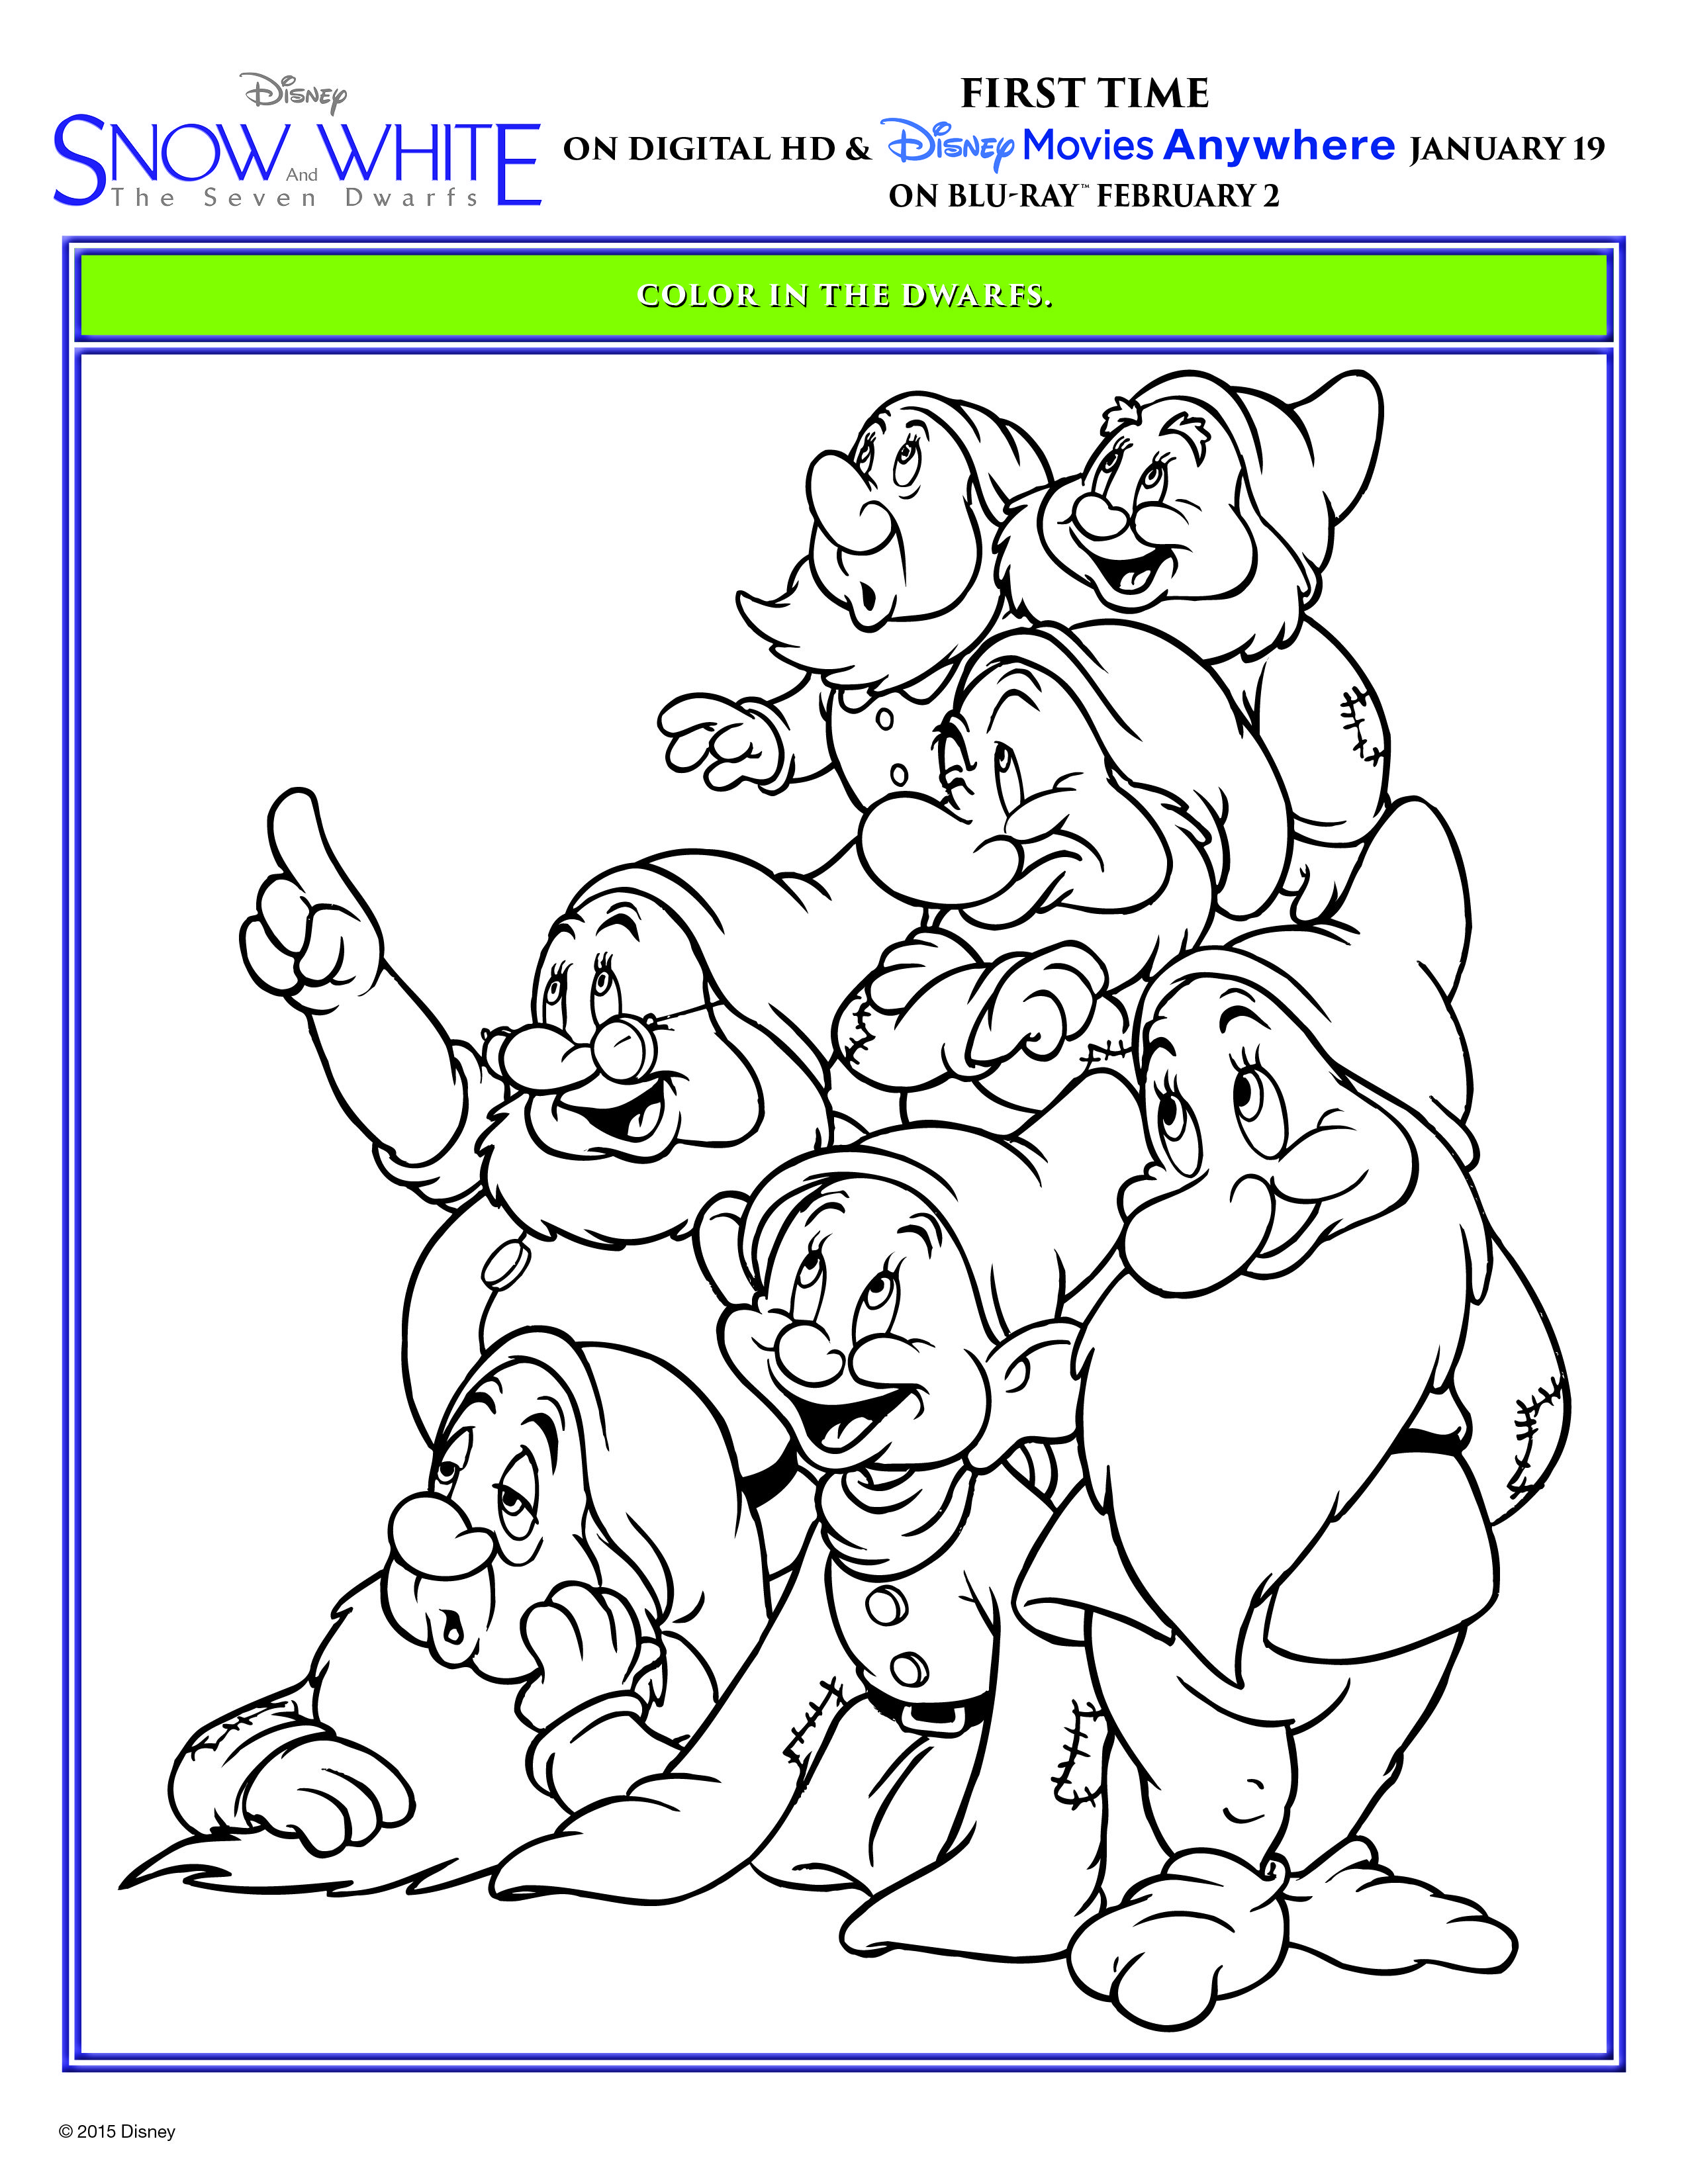 It S Off To Work You Go With This Snow White And The Seven Dwarfs Coloring Sheet Get Snow White And The Seven Dwarfs On Dibujos Garabateados Dibujos Pinturas